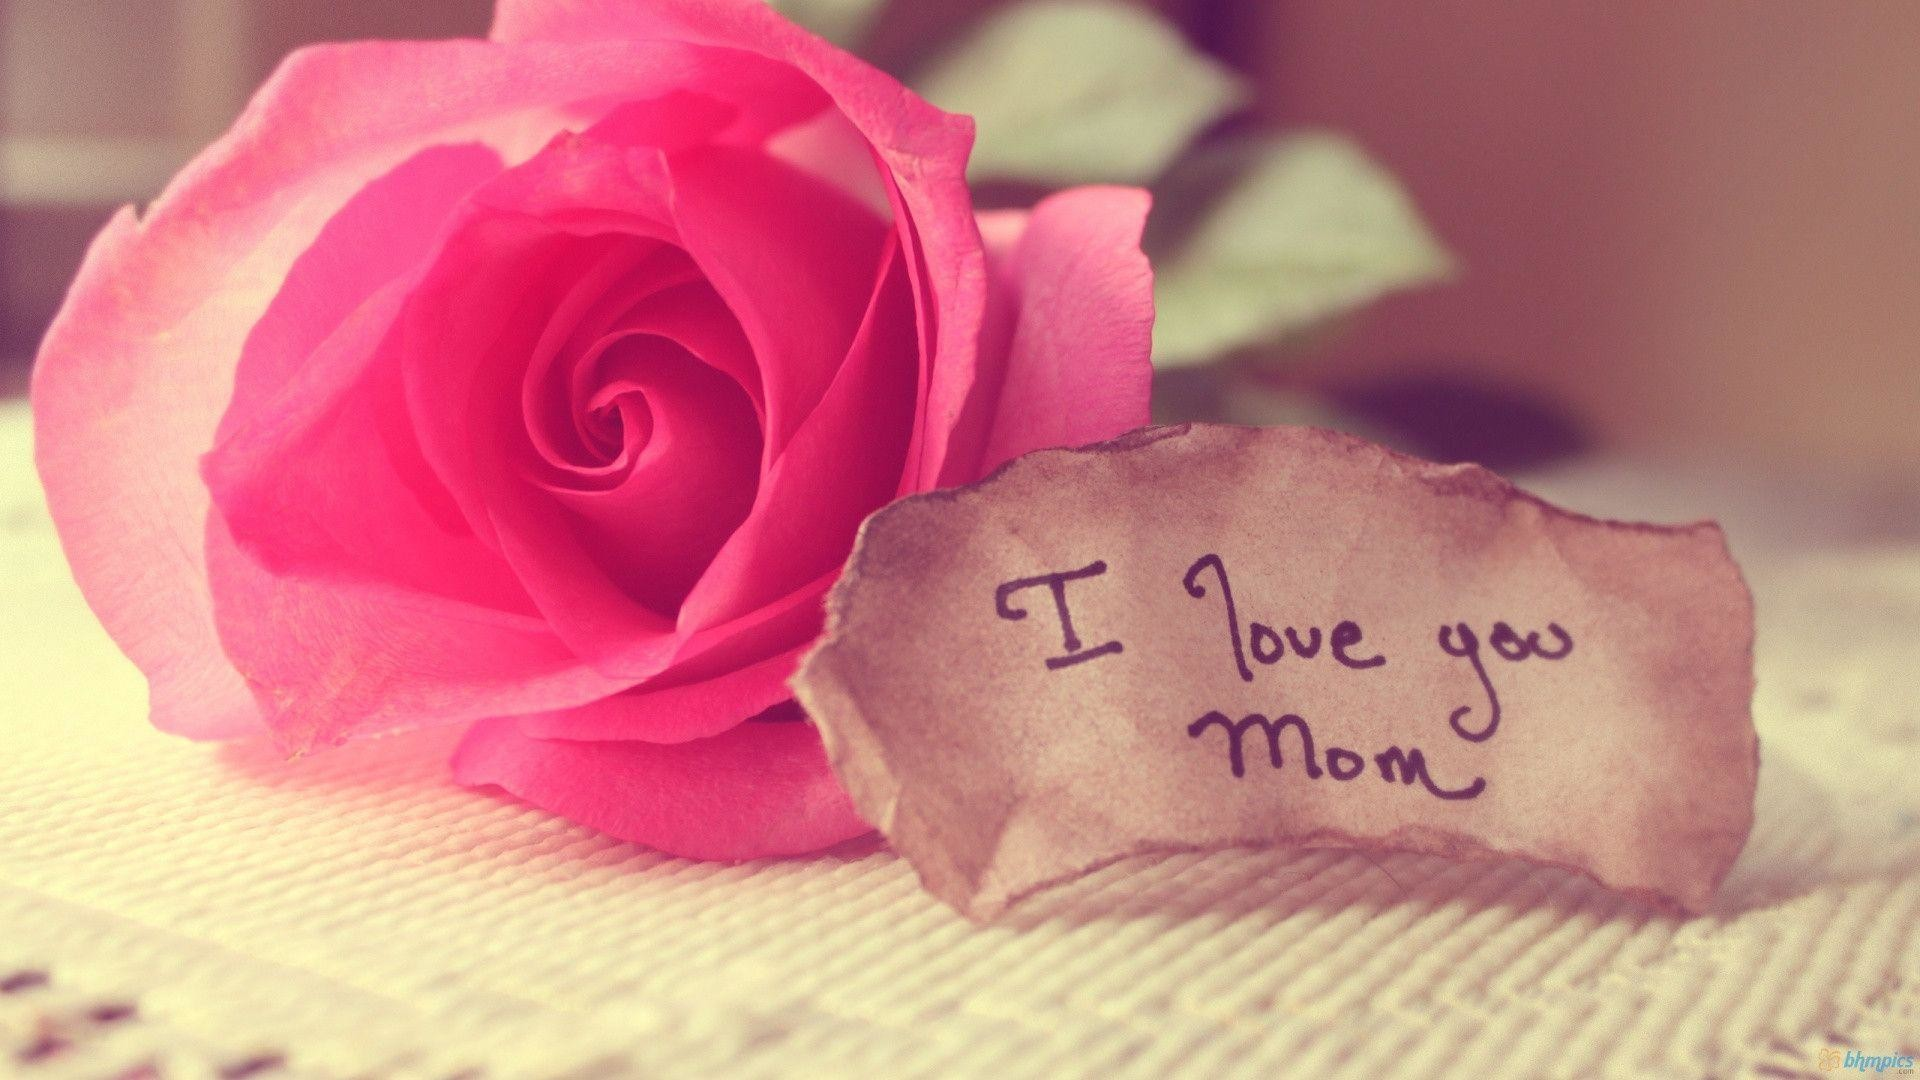 1920x1080 Download Mother's Day I Love You Mom Wallpaper HD (3155) Full Size .